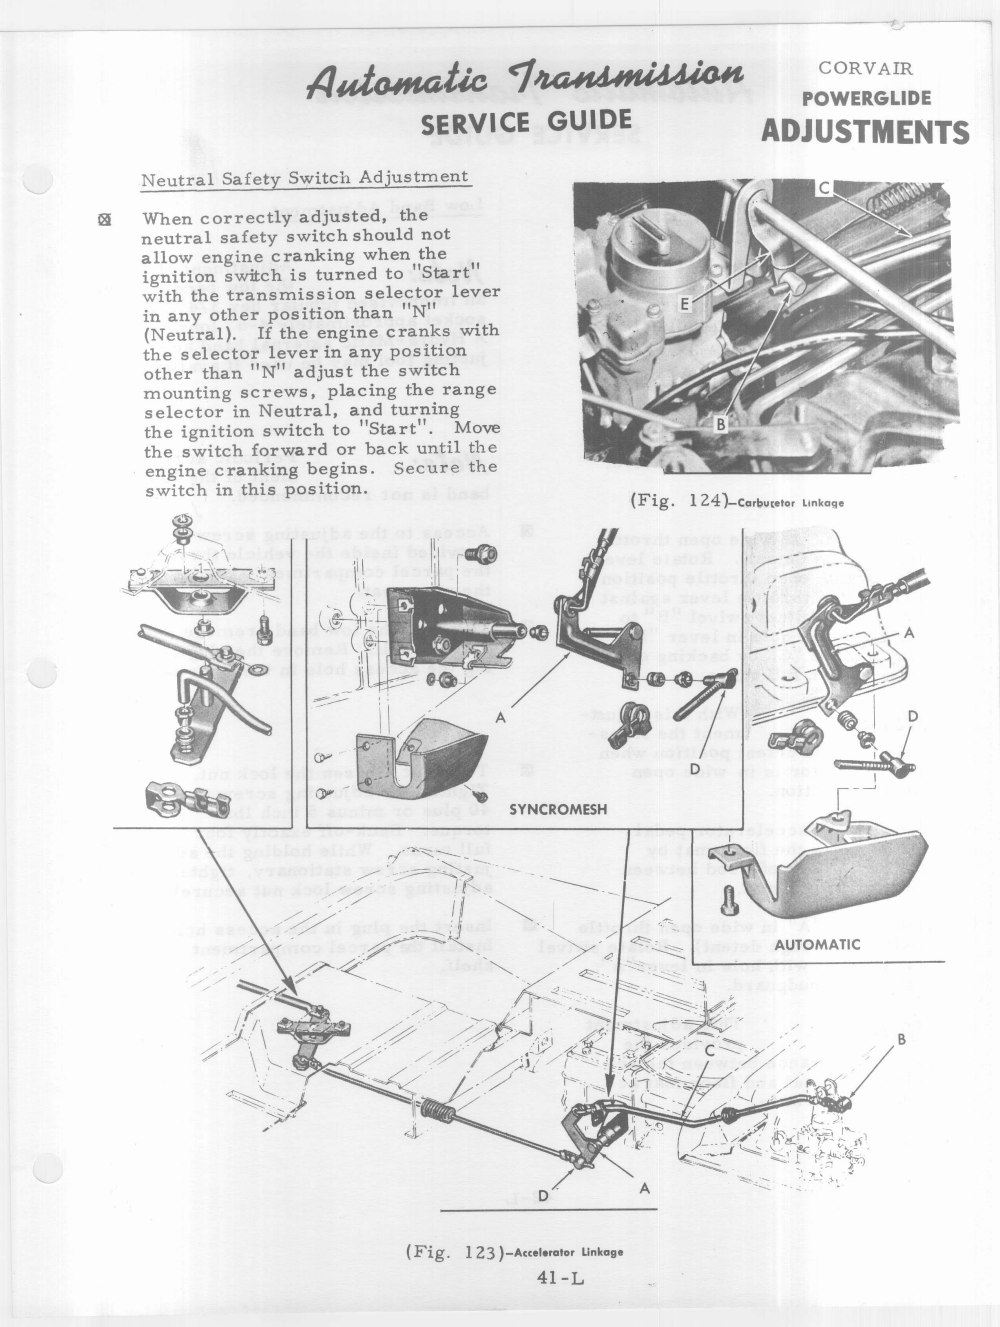 medium resolution of section l corvair powerglide l corvairpowerglide0006 jpg